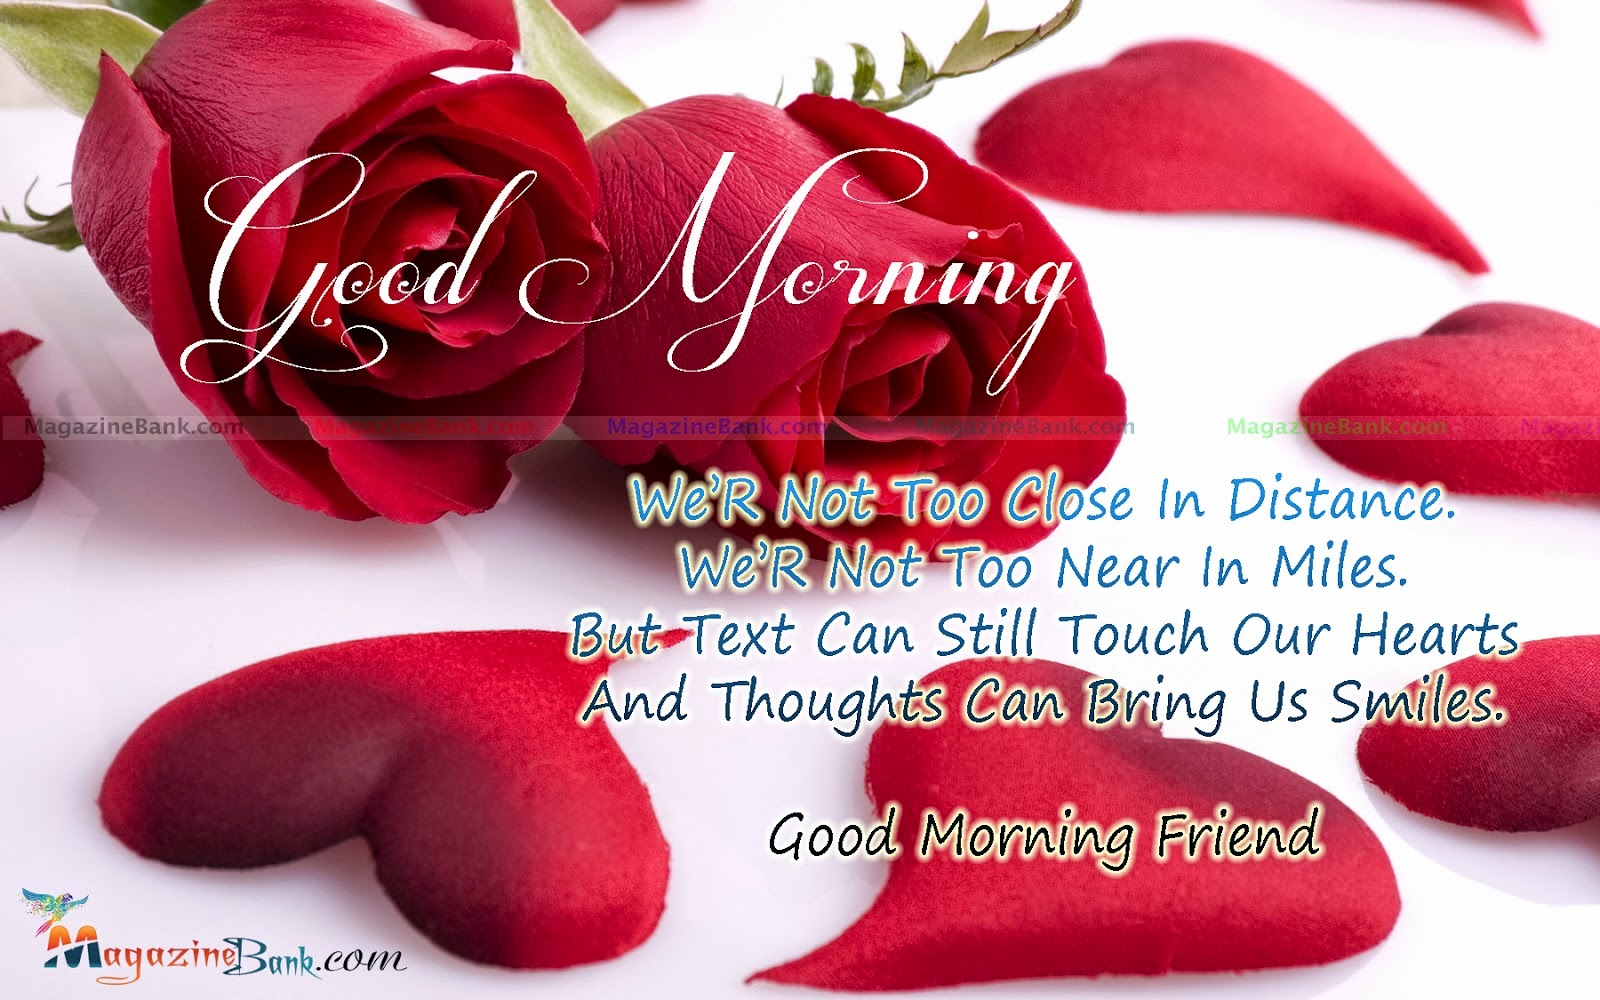 Good Morning Quotes Information With Wallpapers Information Magazine